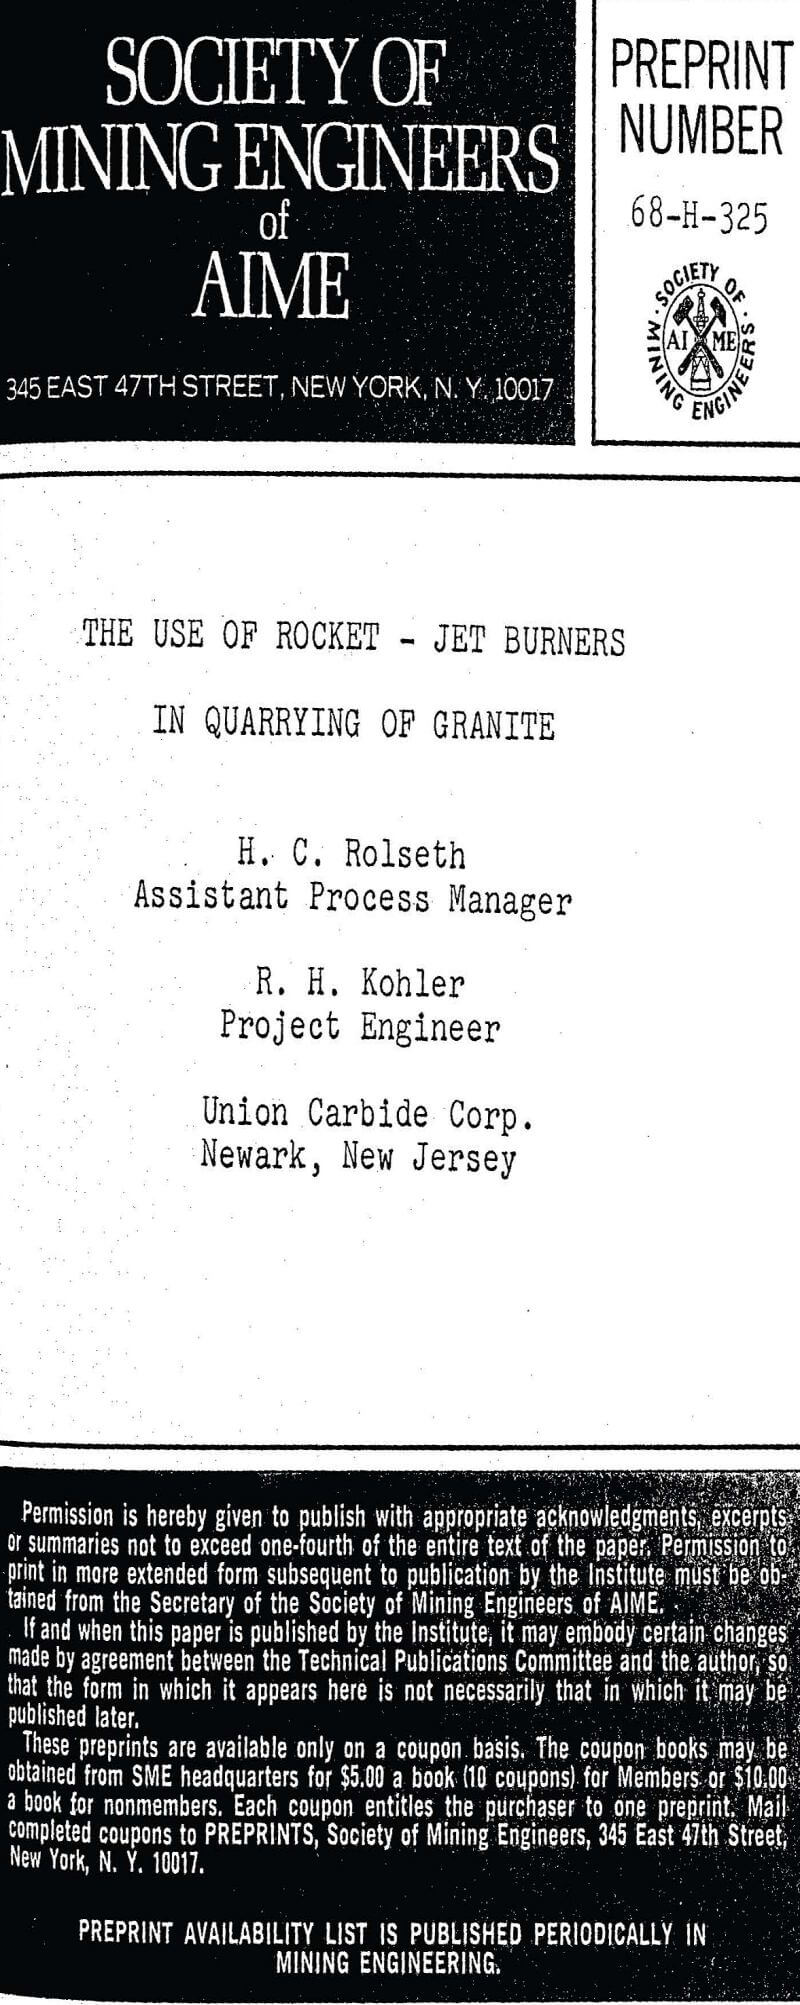 the use of rocket jet burners in quarrying of granite